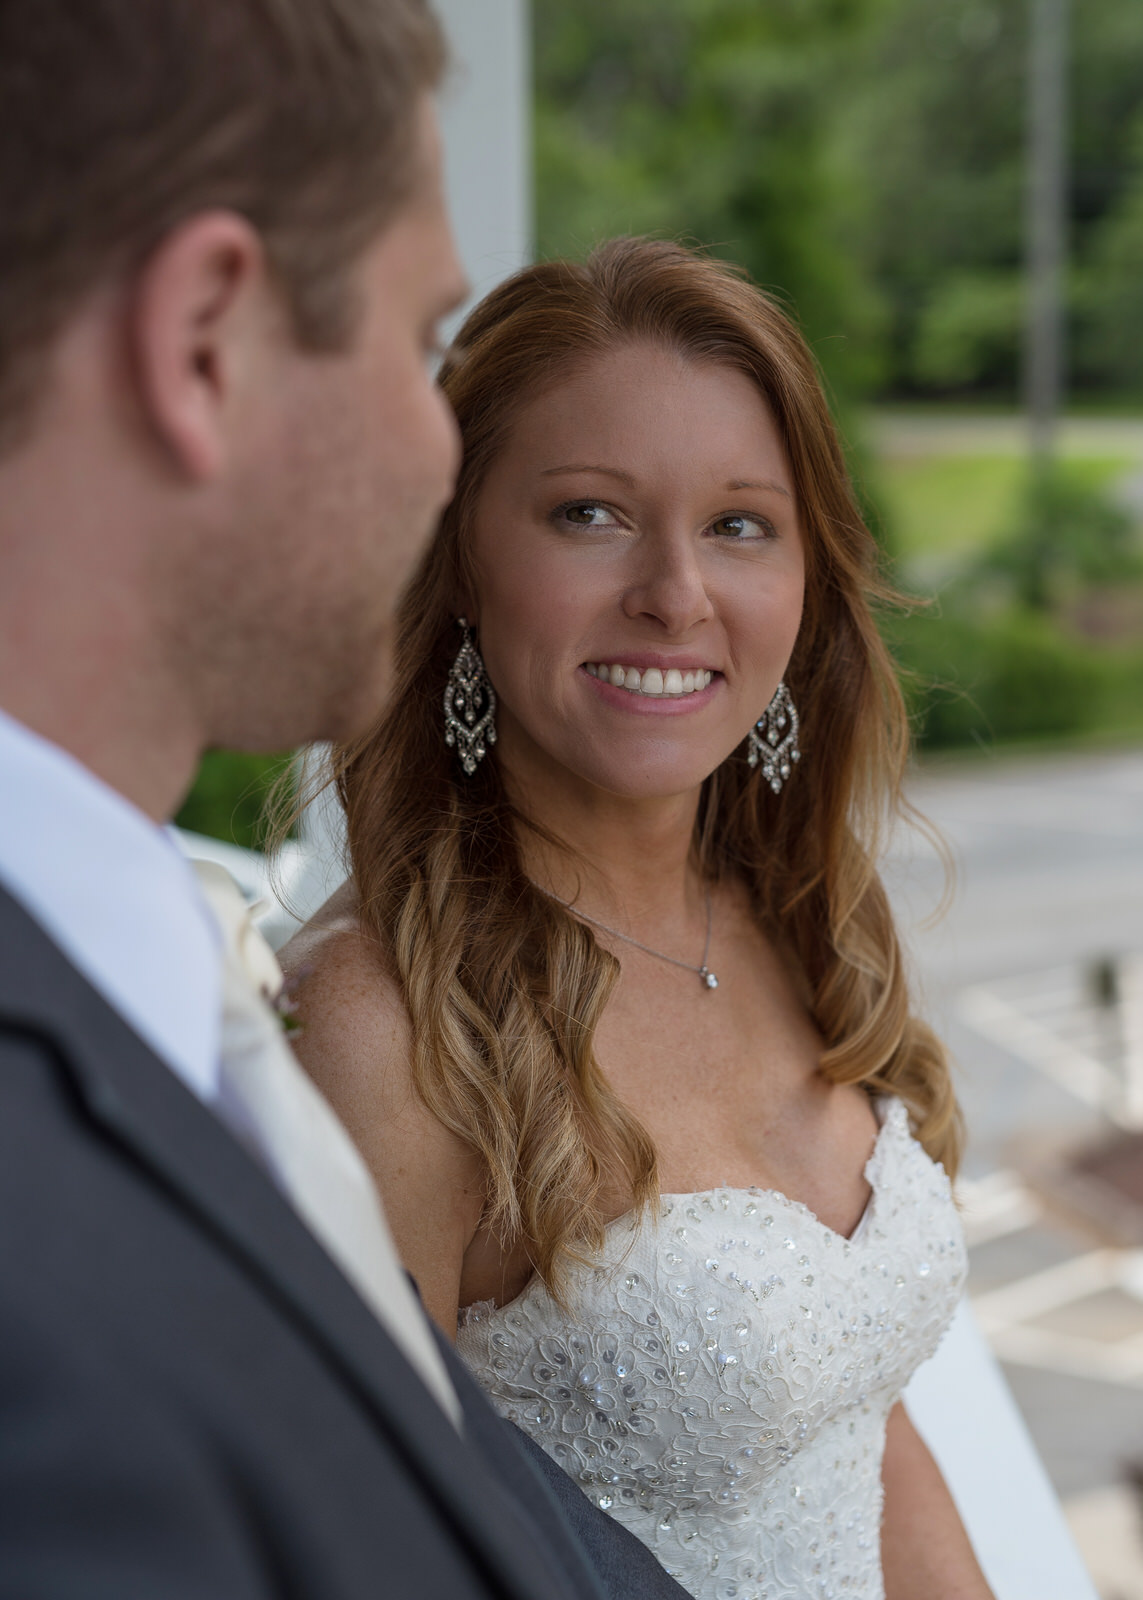 Kennesaw GA, Happy bride and groom on wedding day